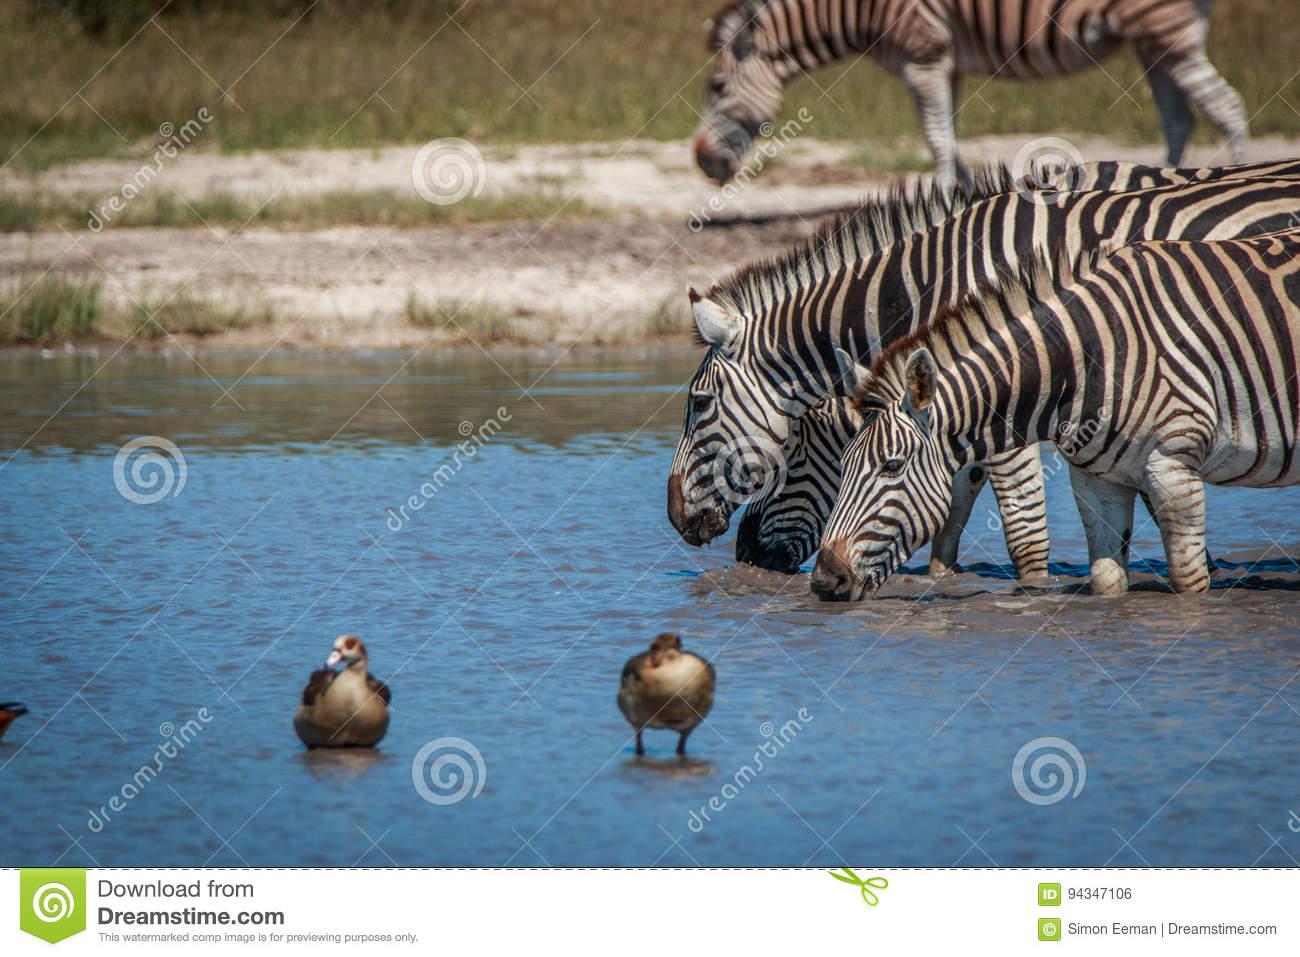 Several Zebras drinking in the waterhole